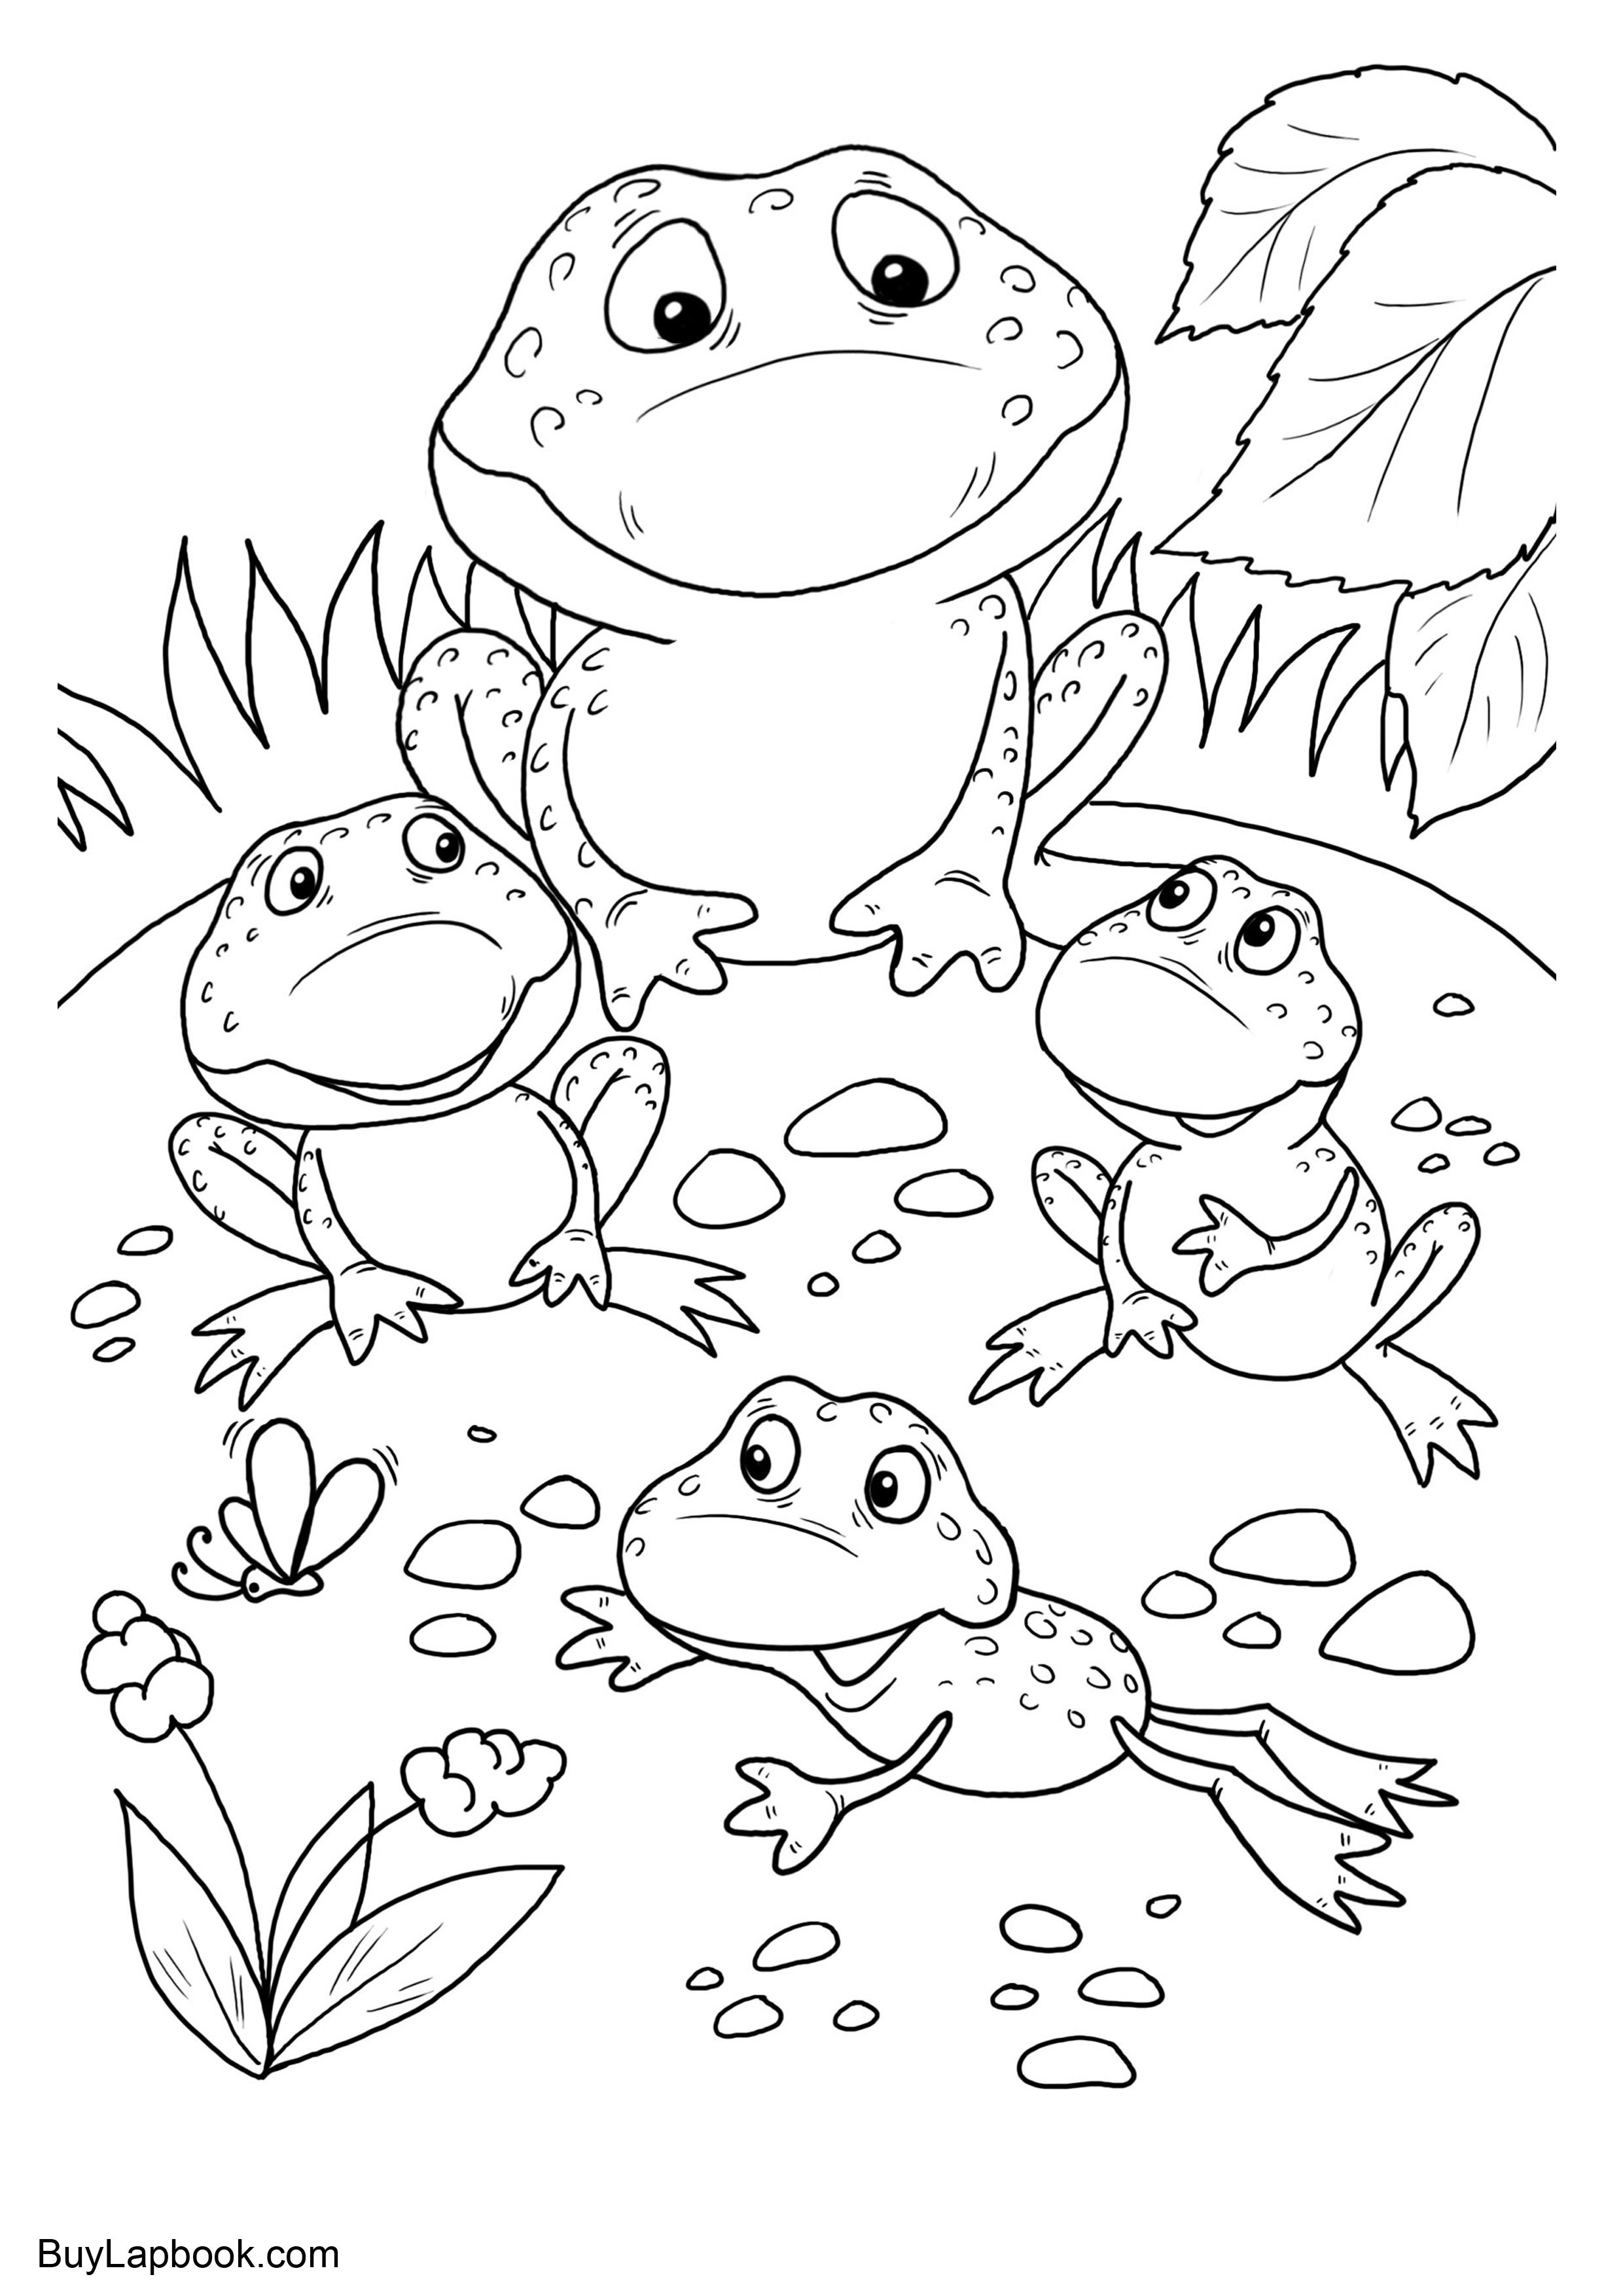 coloring image of a frog the life cycle of a frog free coloring pages buylapbook frog coloring of image a